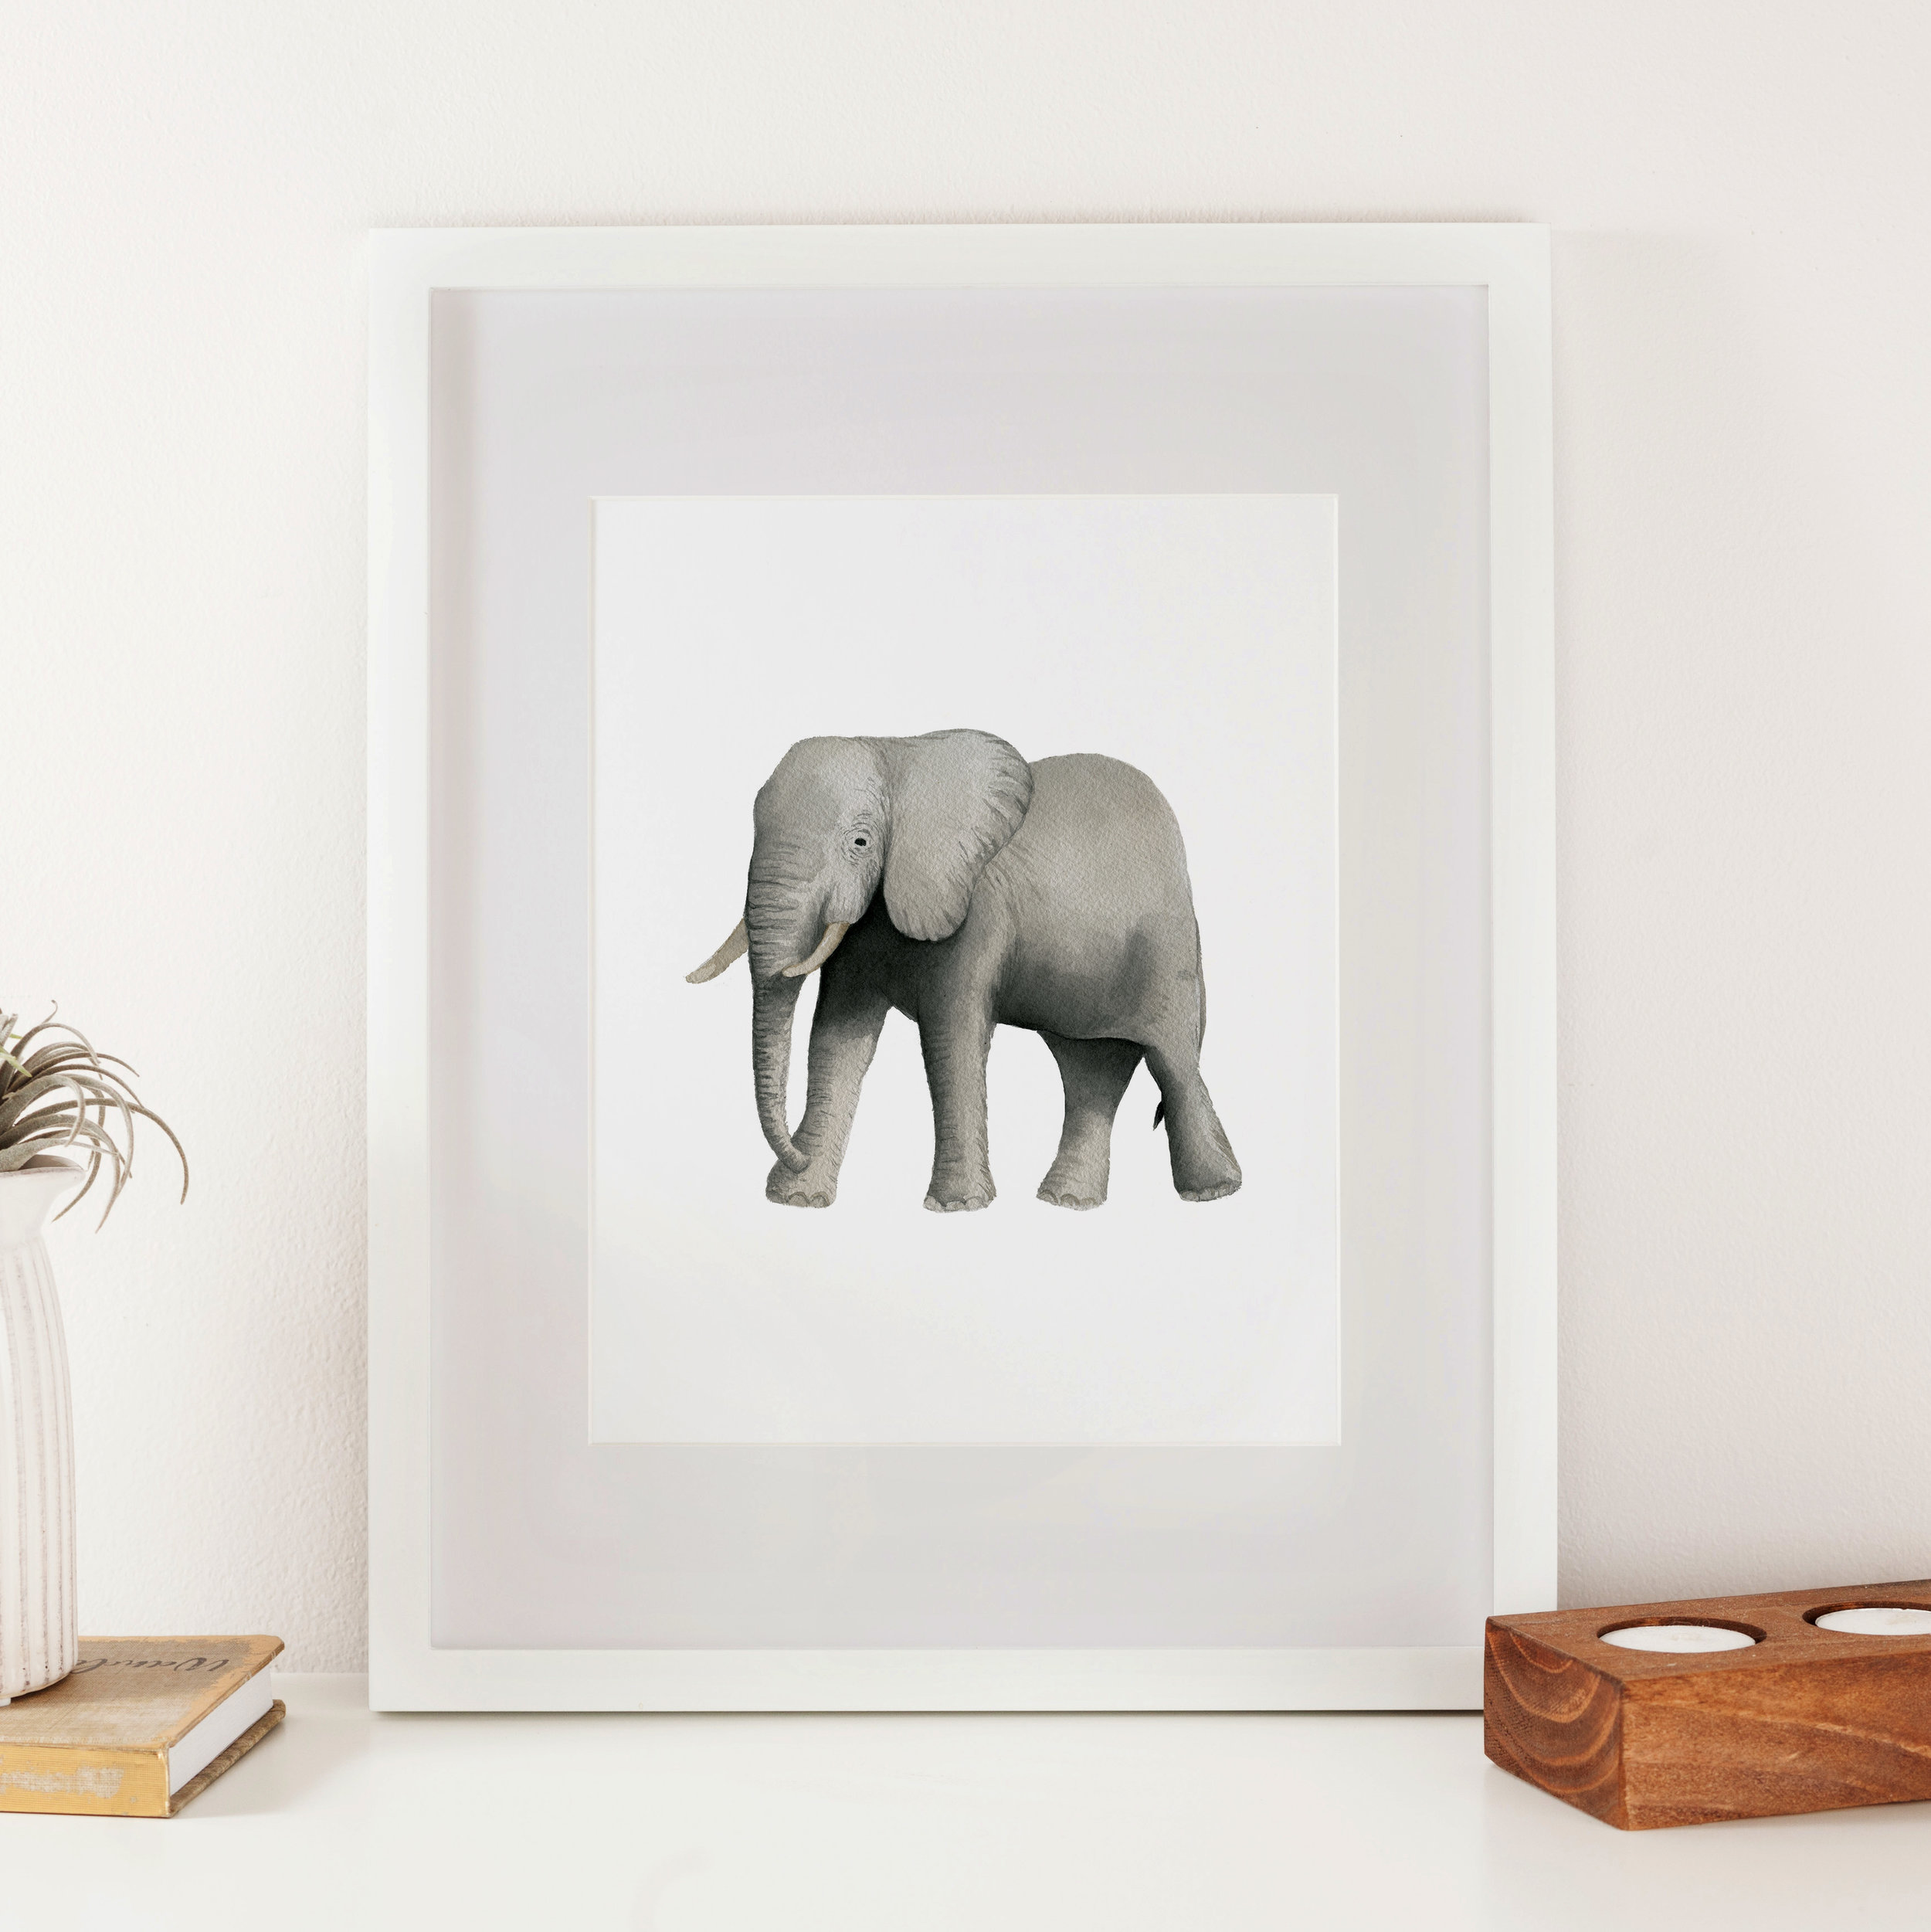 Elephant Watercolor Print - Starting at $18.00